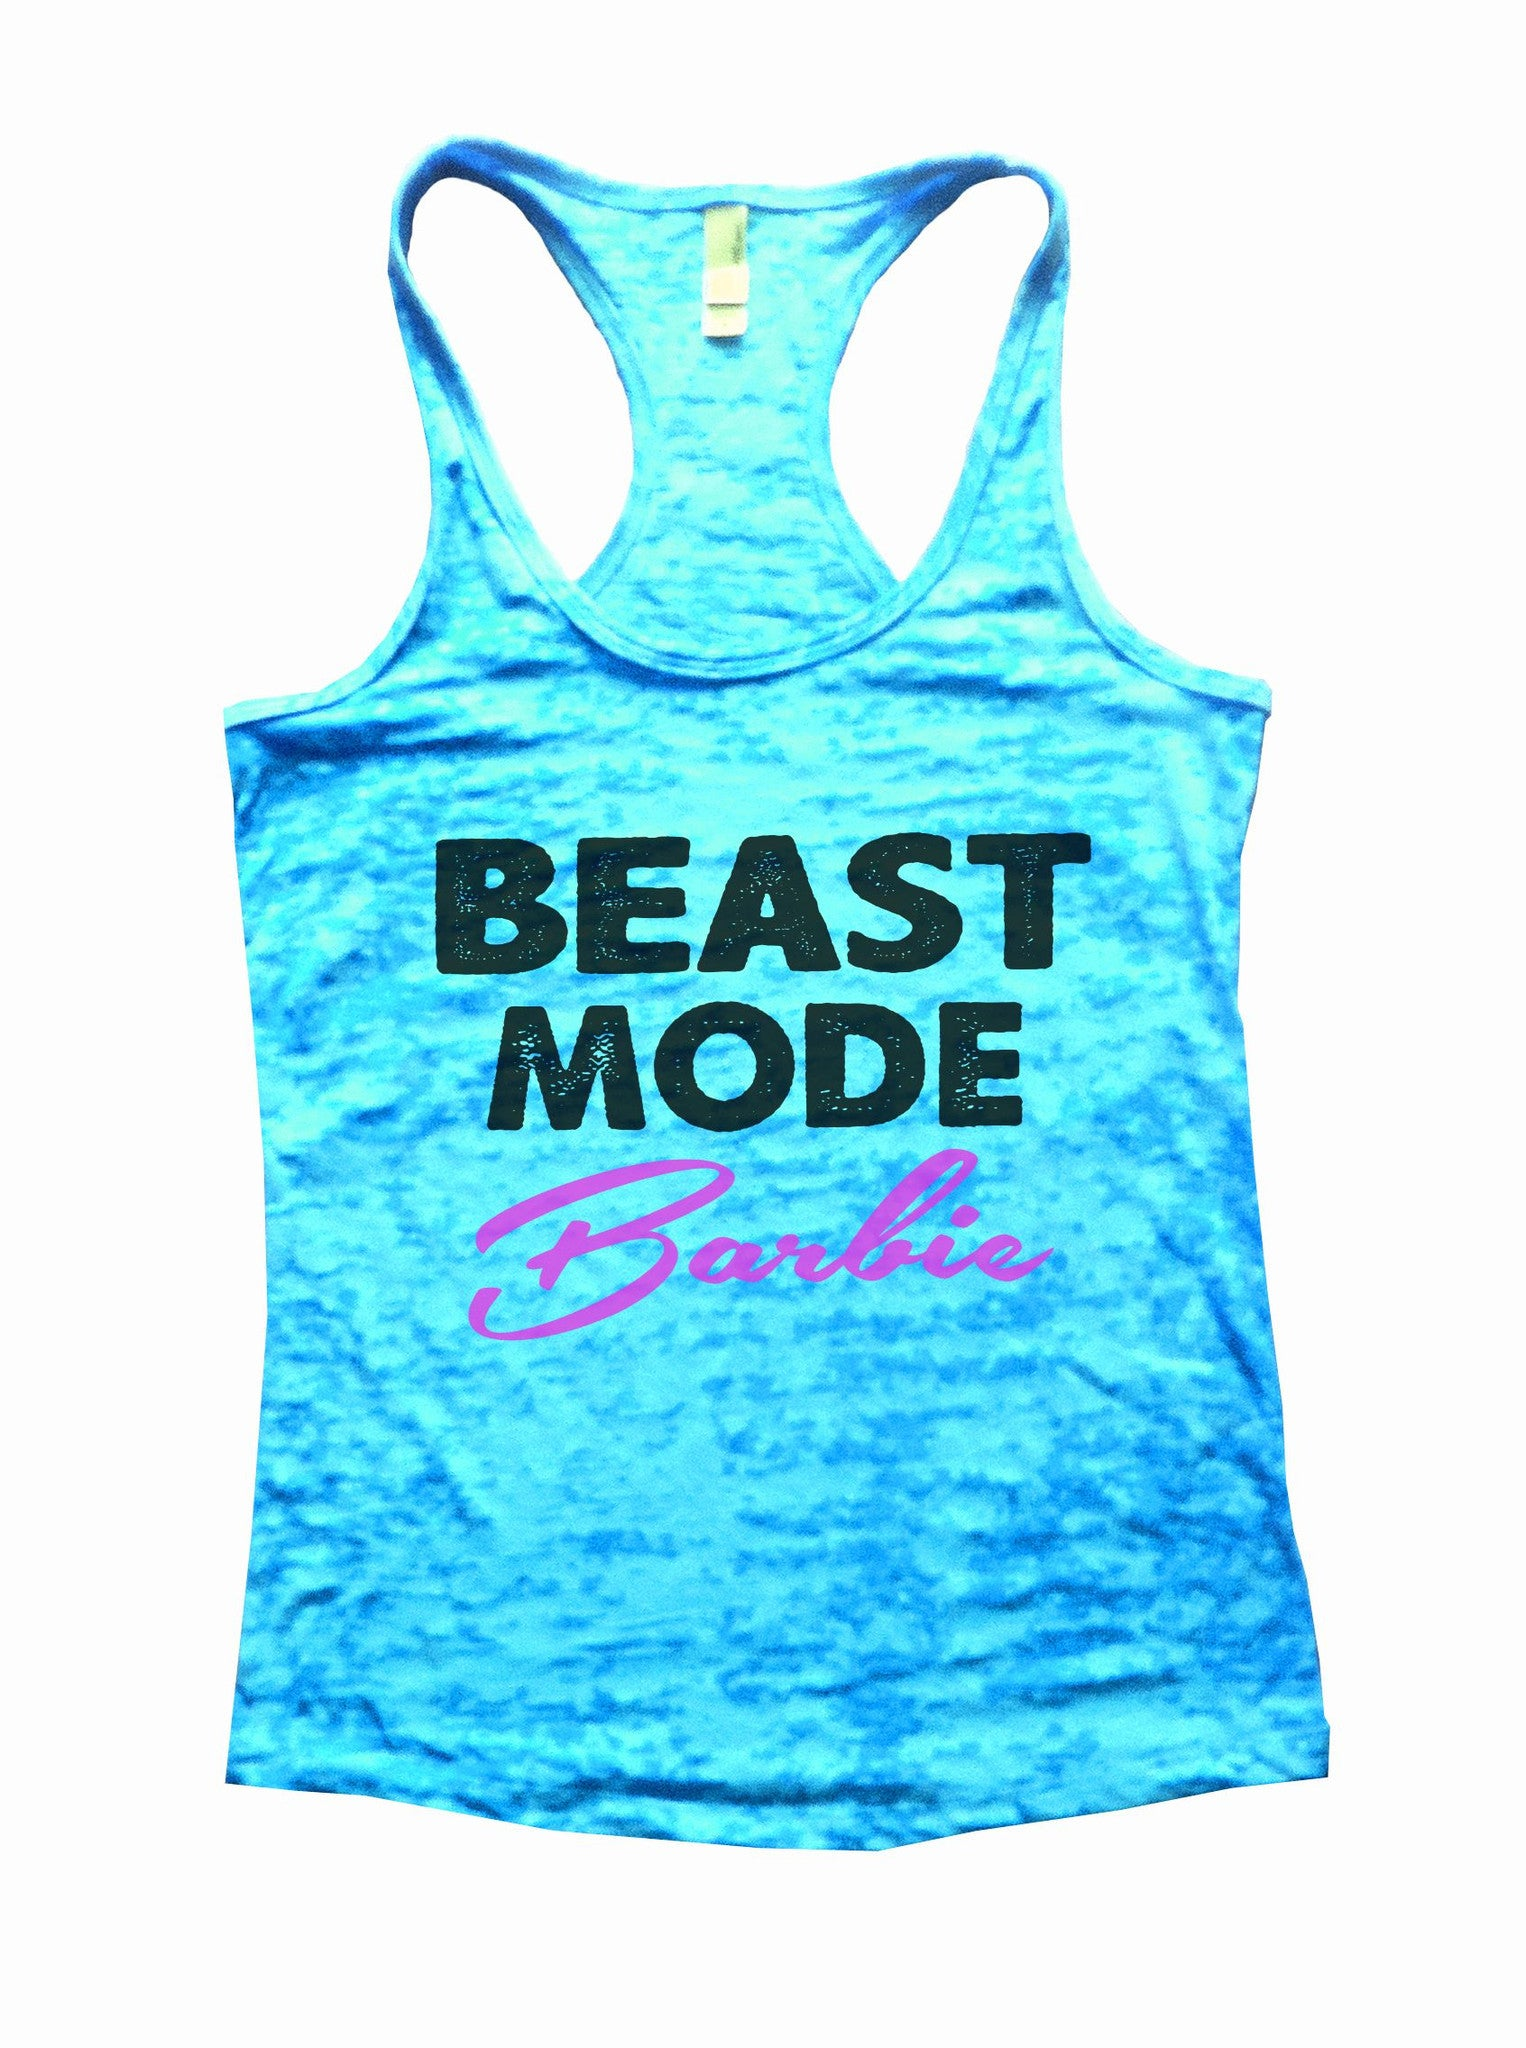 Beast Mode Barbie Burnout Tank Top By BurnoutTankTops.com - 668 - Funny Shirts Tank Tops Burnouts and Triblends  - 3